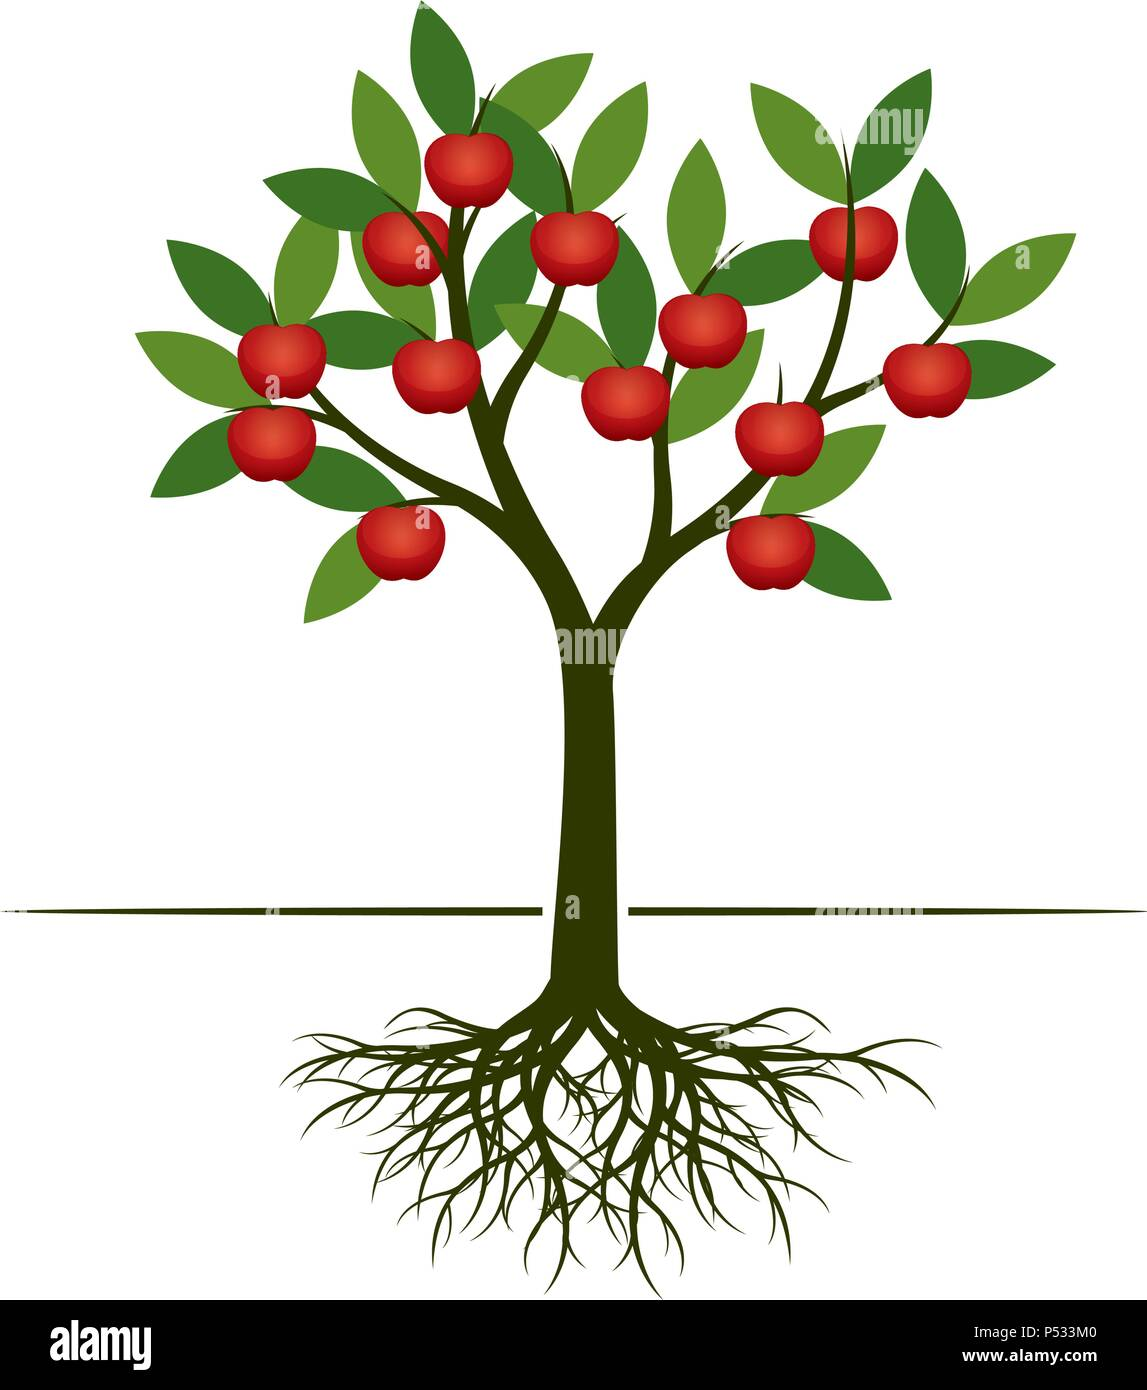 Green Apple Tree With Red Apple Fruits Vector Illustration Stock